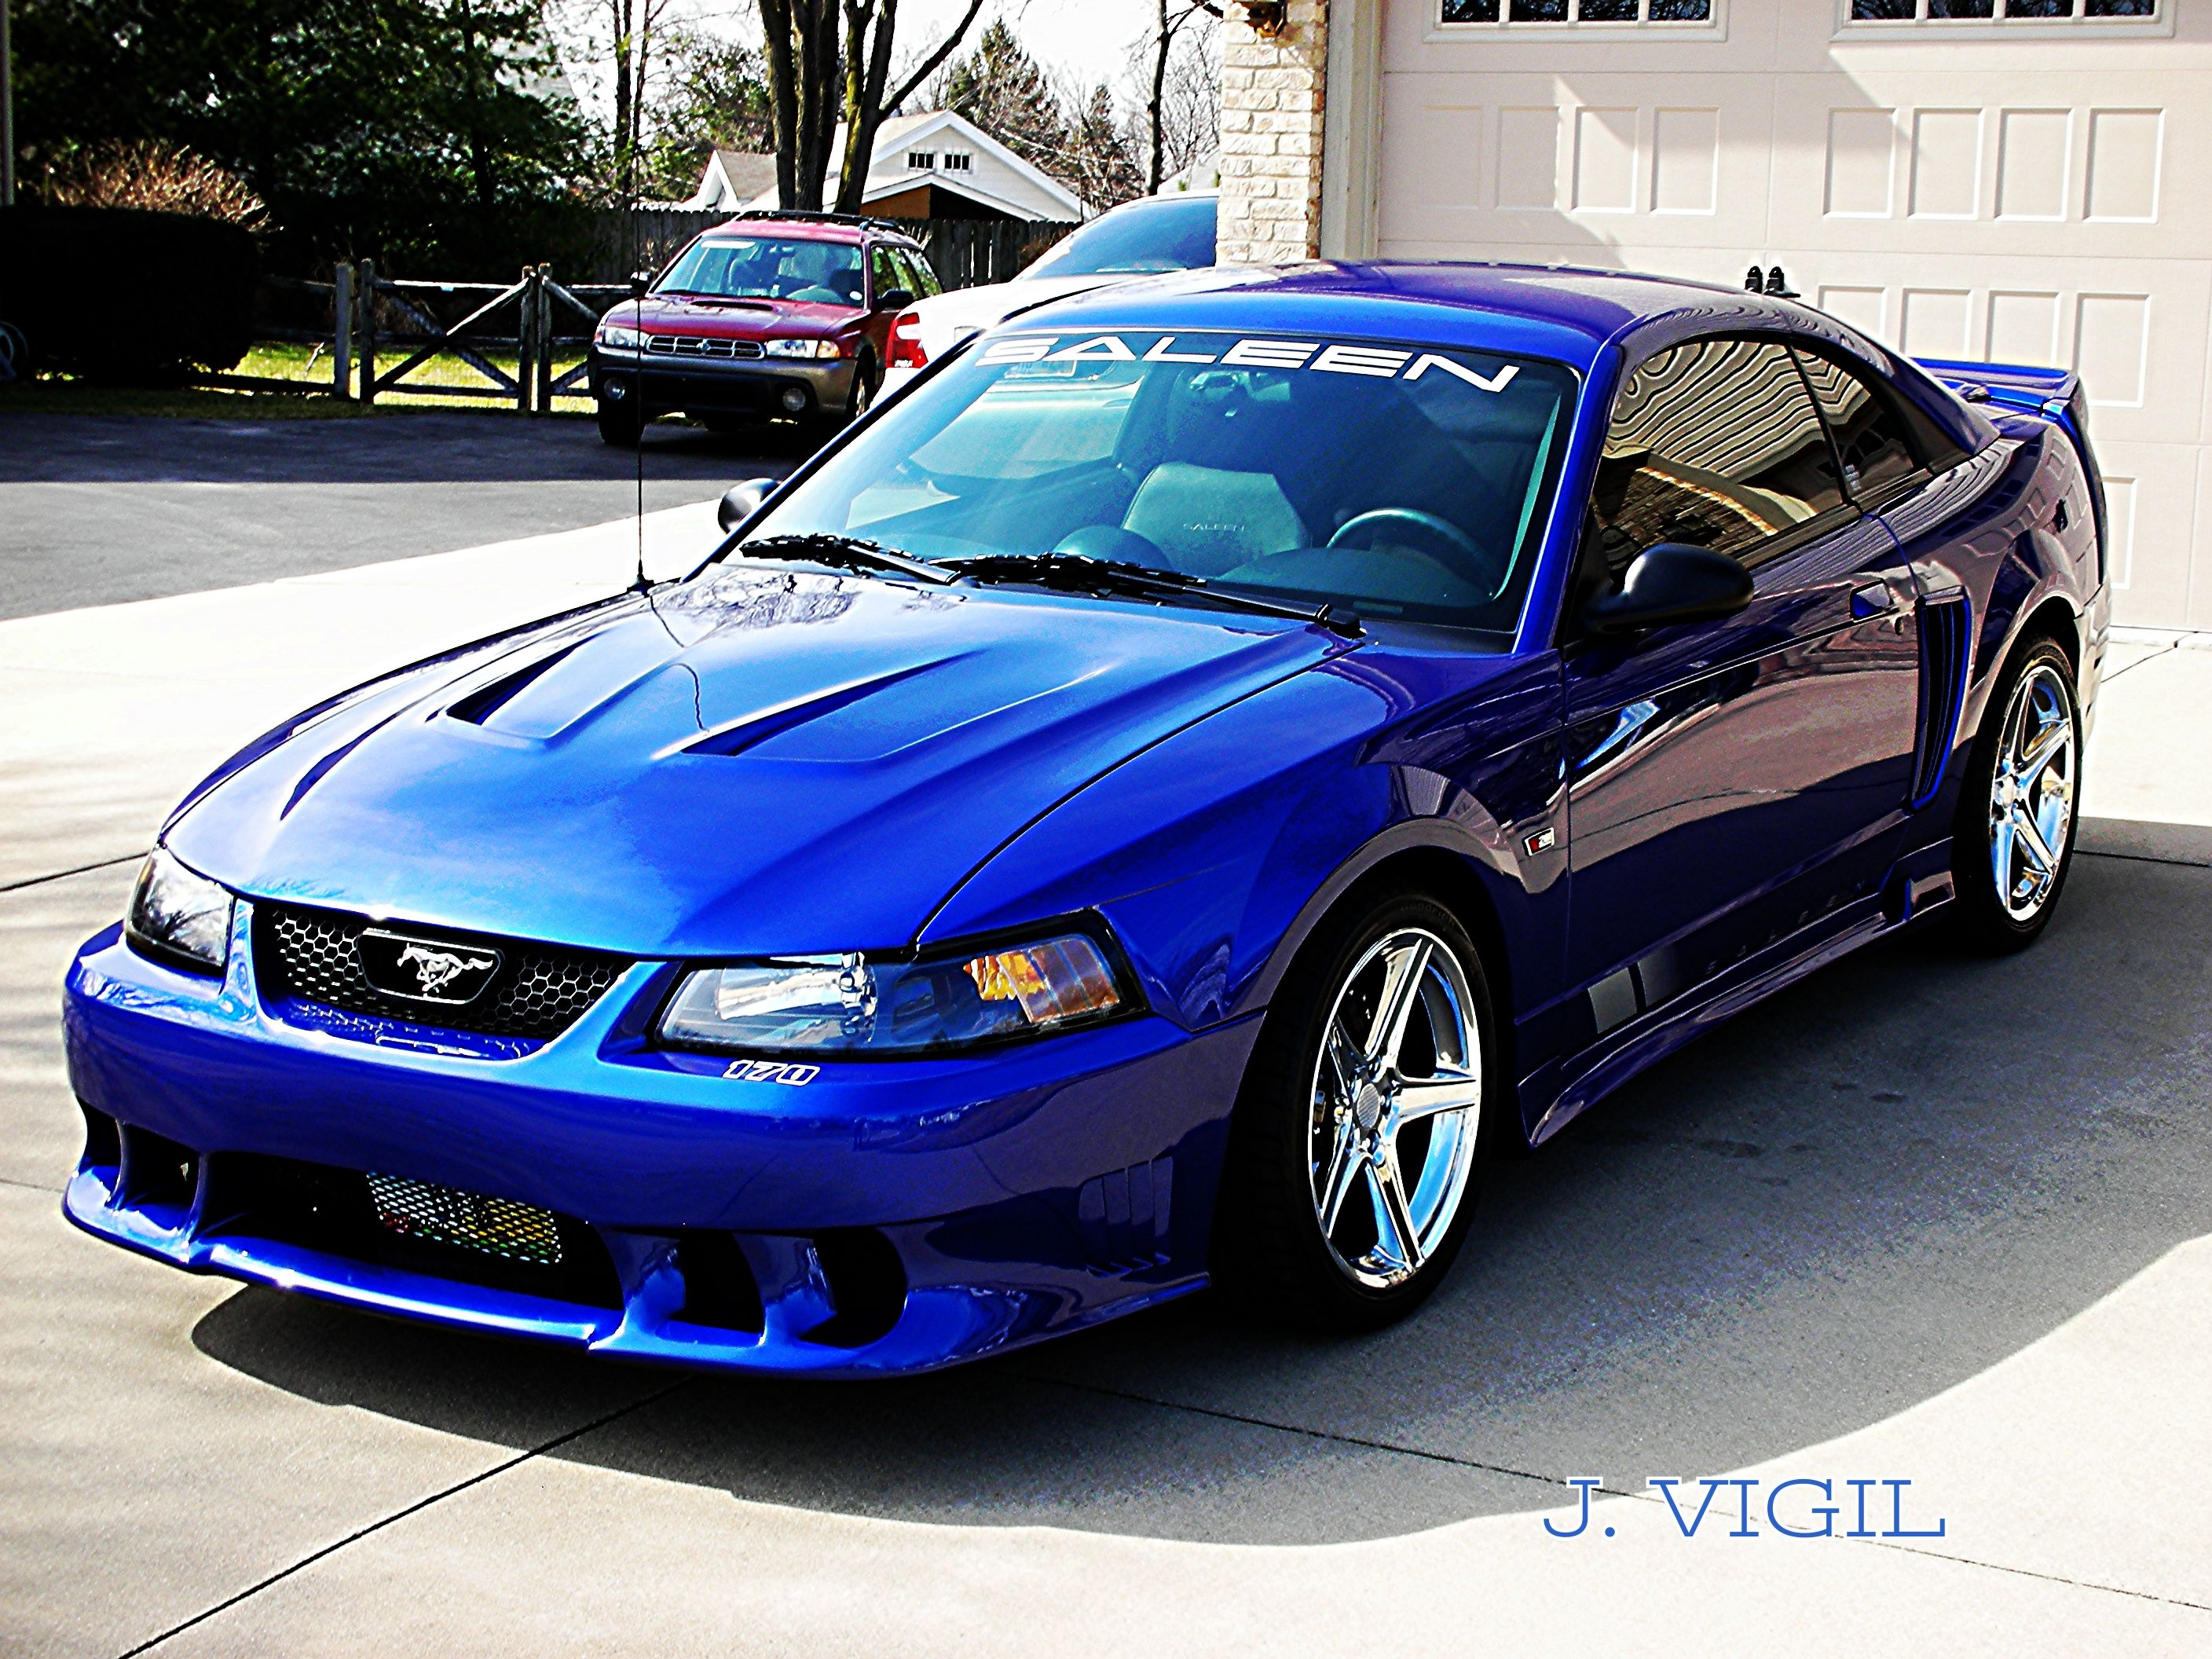 2003 Saleen S281sc 170 Saleen Mustang 2000 Ford Mustang 2004 Ford Mustang